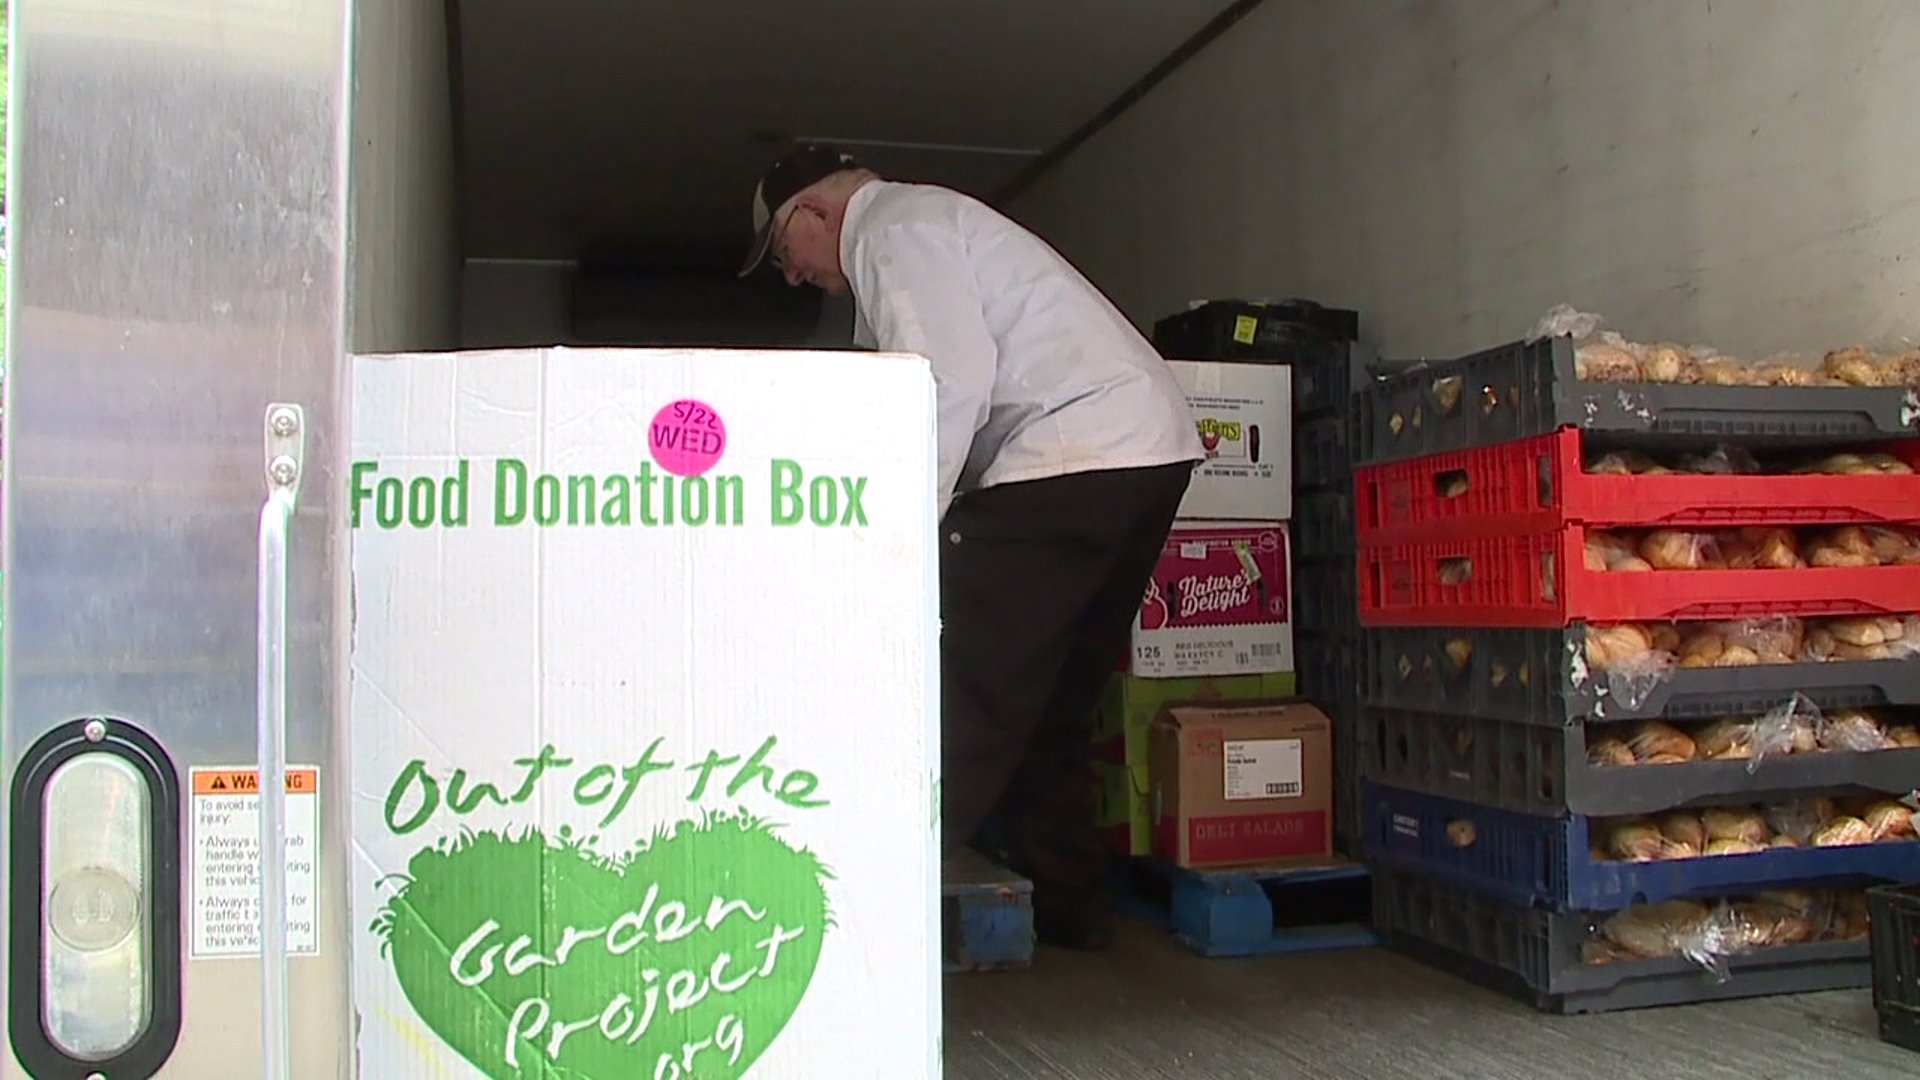 Out of the Garden Project using donated food from canceled ACC tournament to feed kids in need